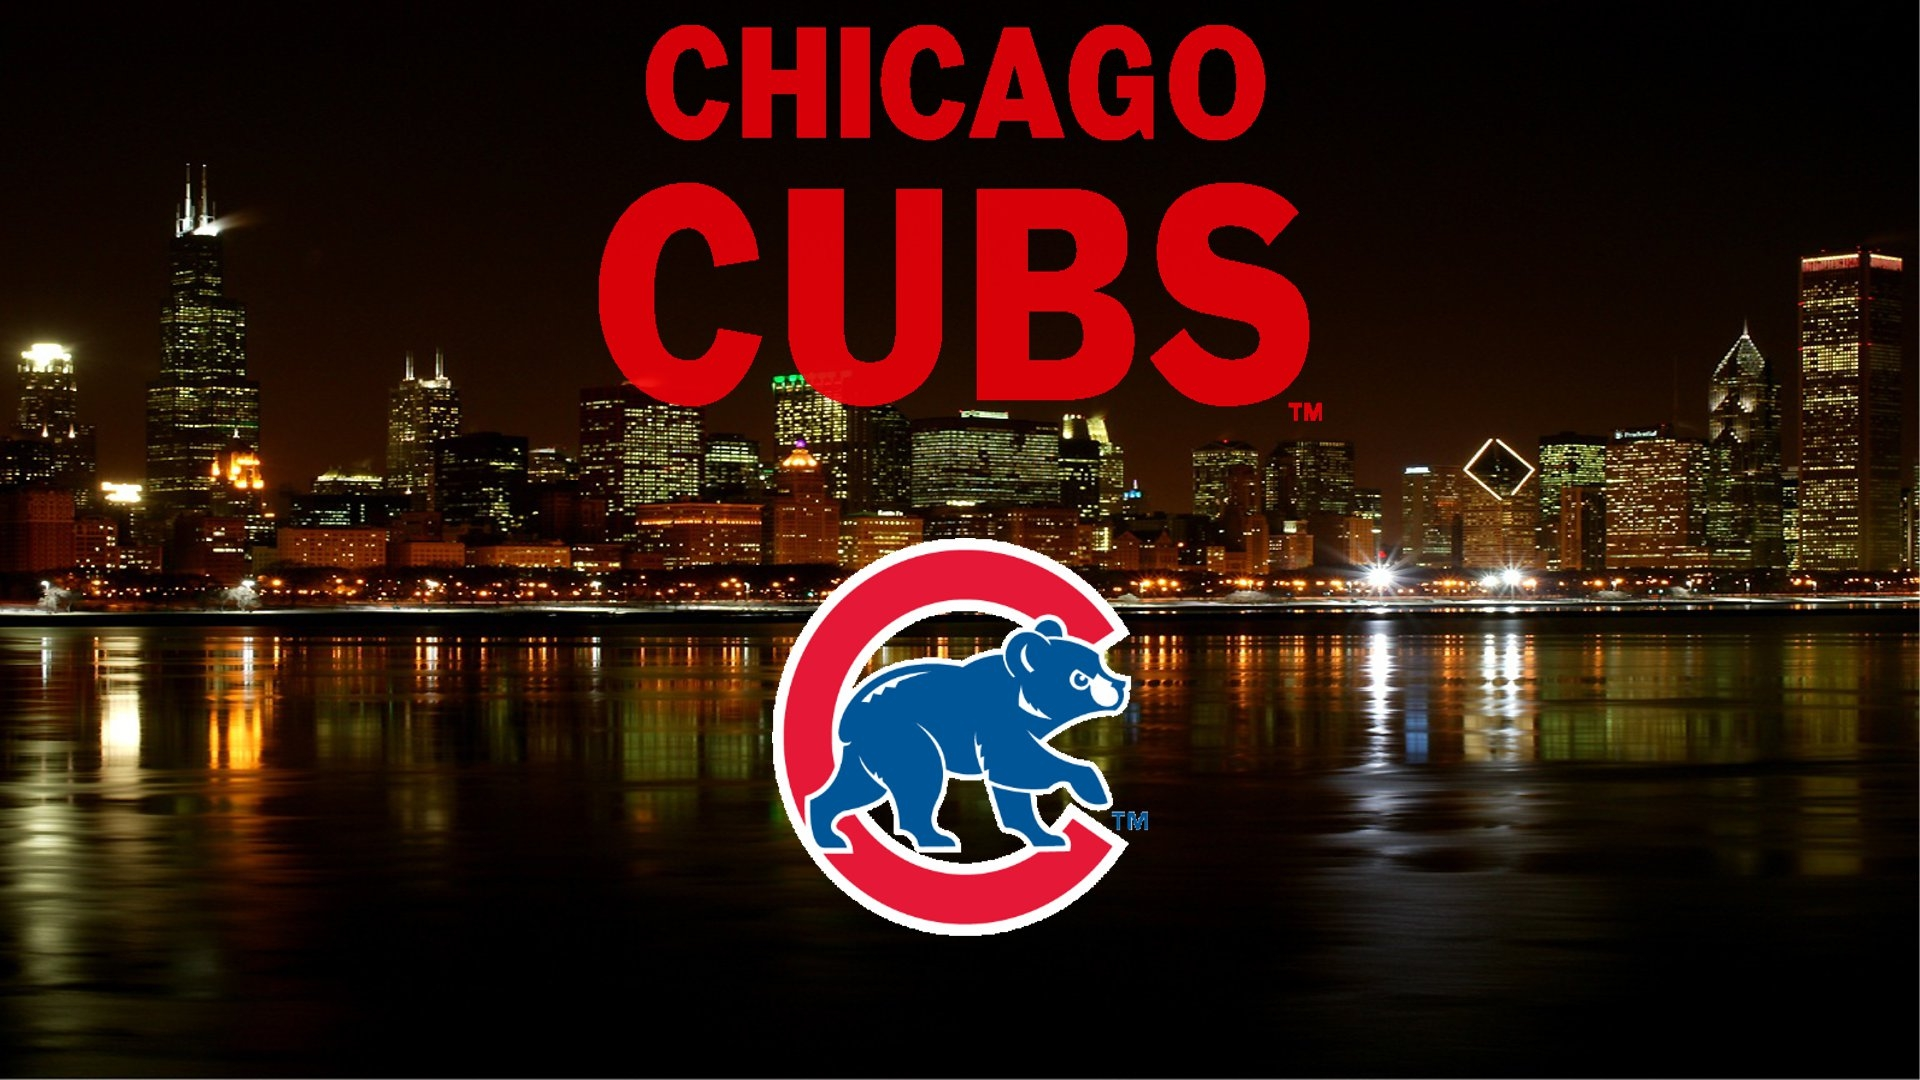 Chicago Cubs wallpaper 1920x1080 69228 1920x1080